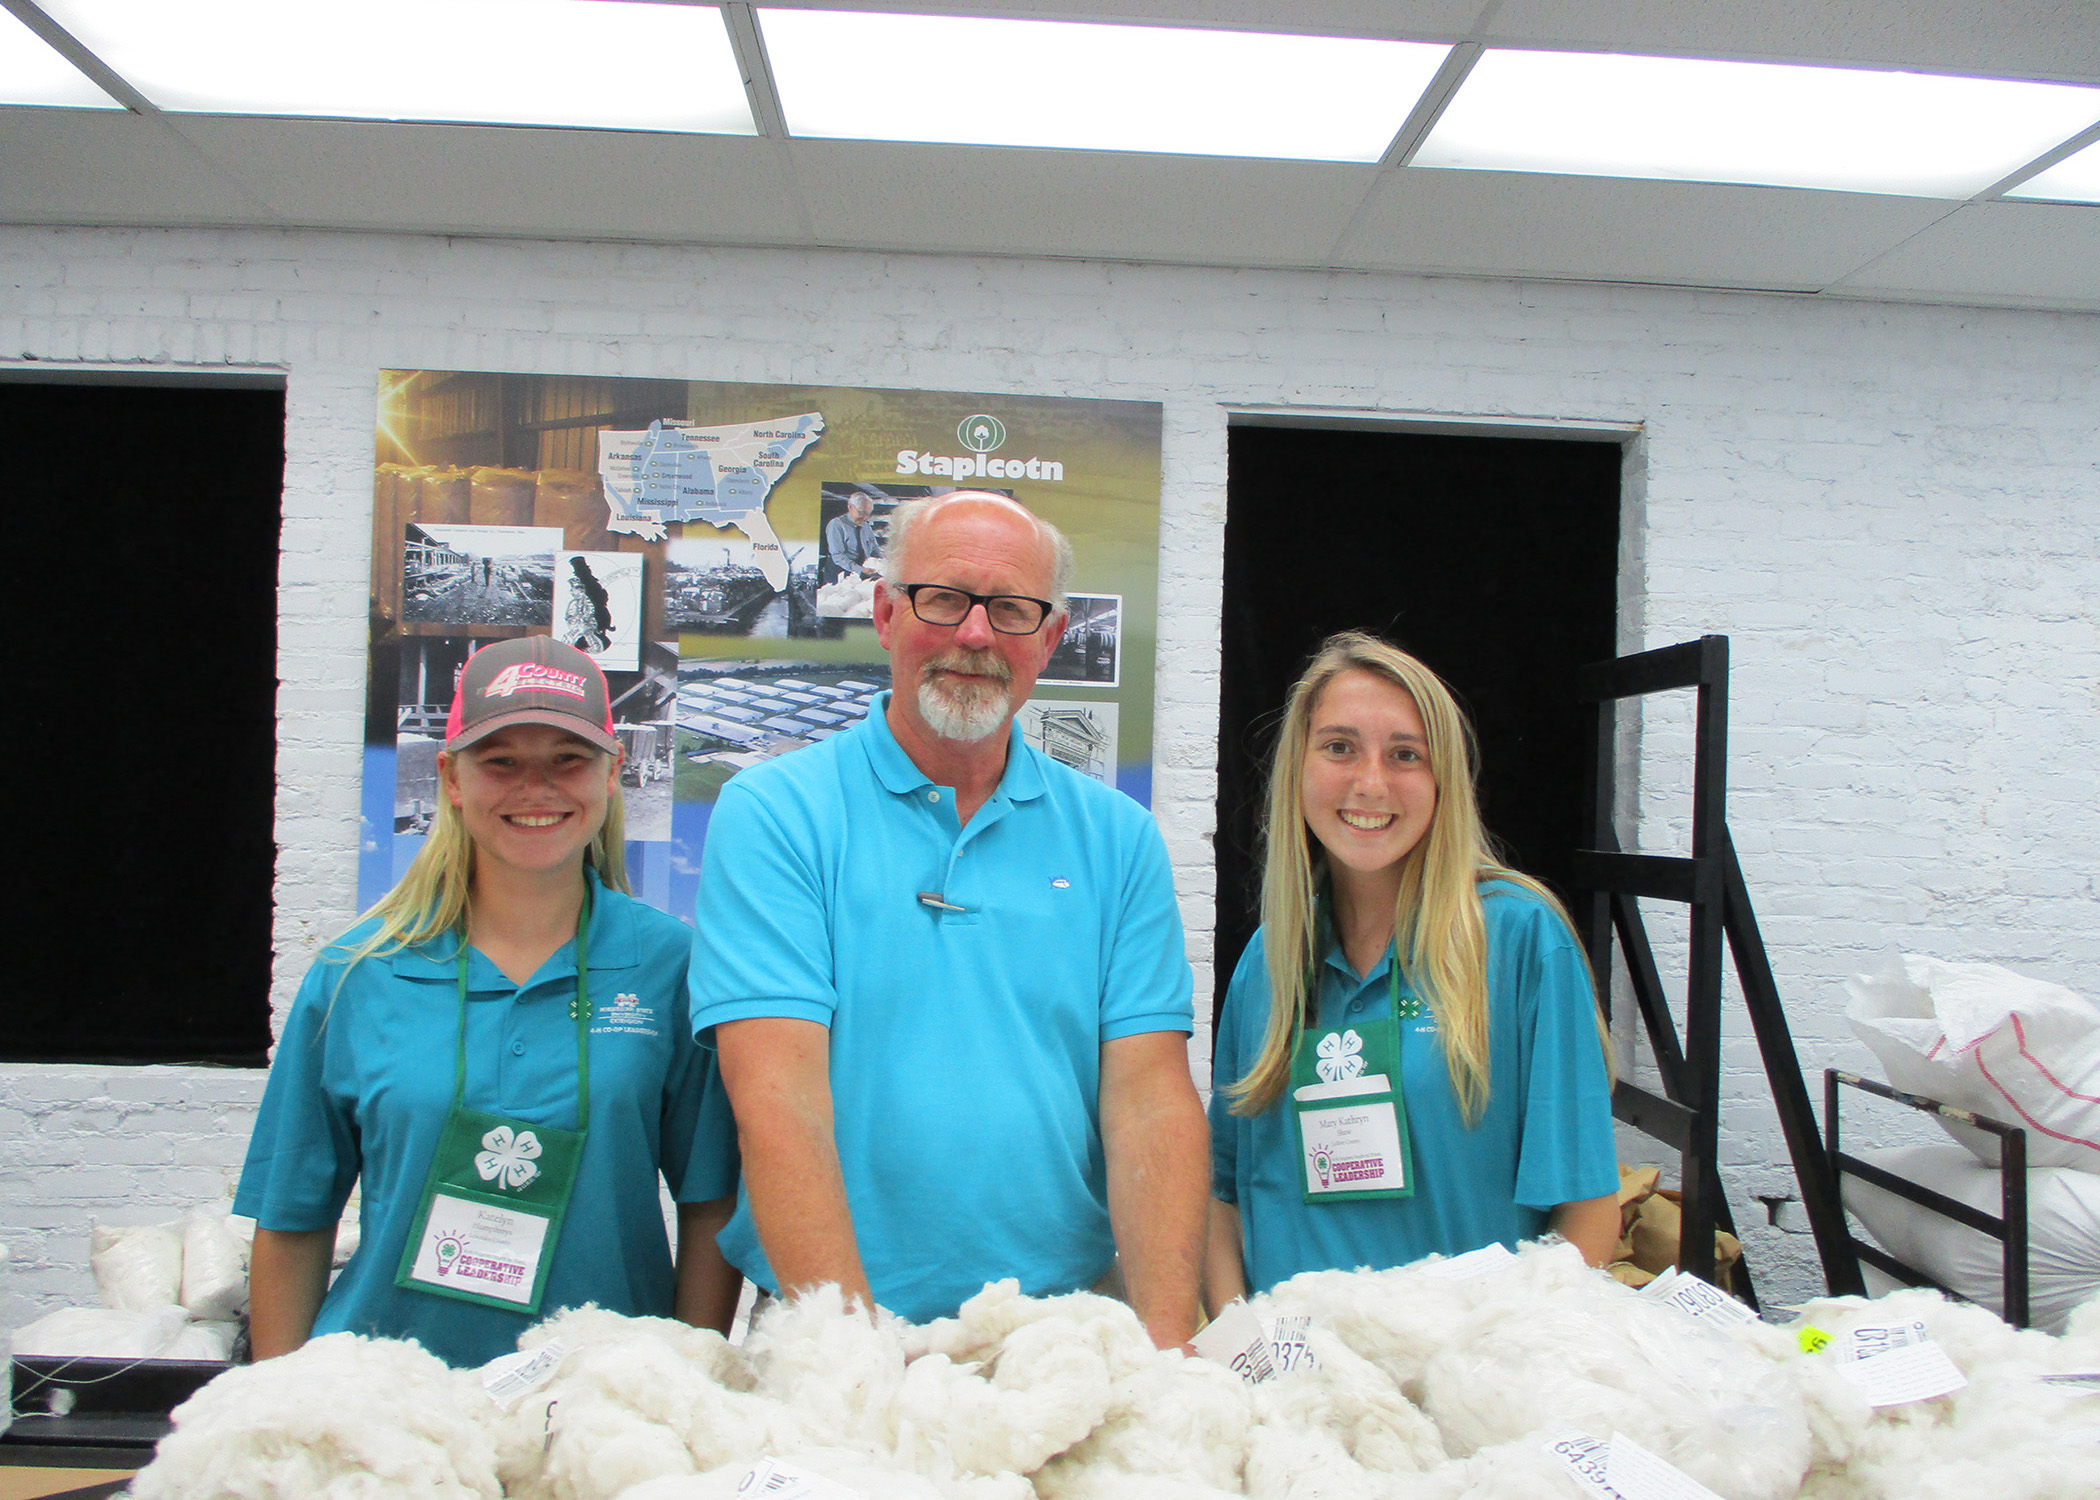 Two blonde haired girls and a middle age man all wearing blue shirts pose next to a table with cotton on it.